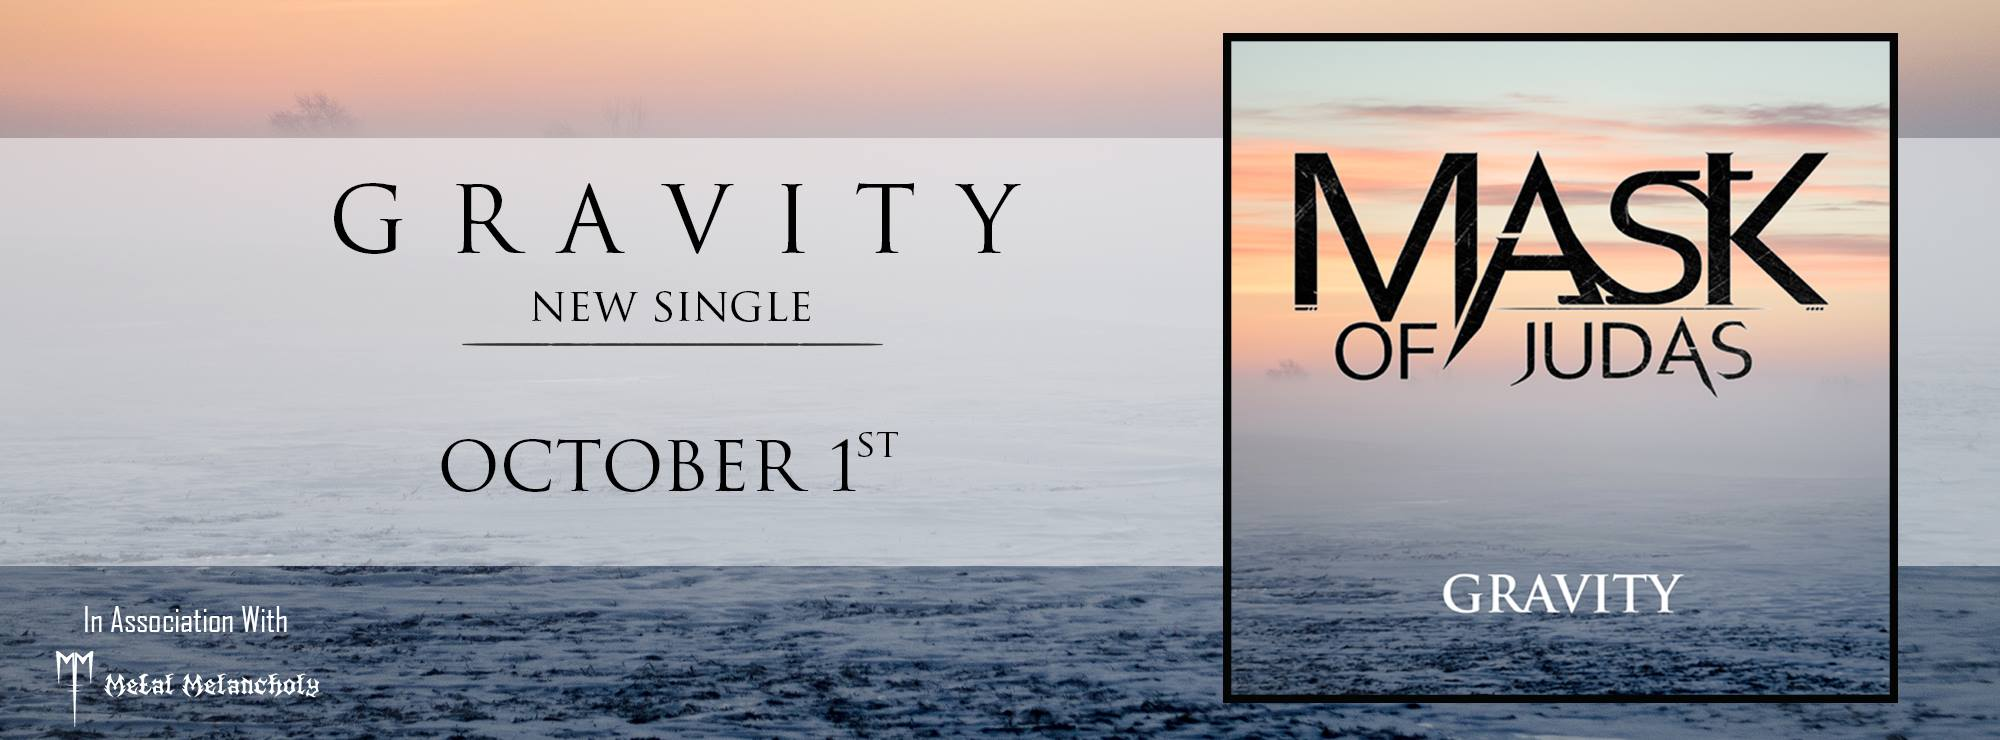 Gravity Cover Photo